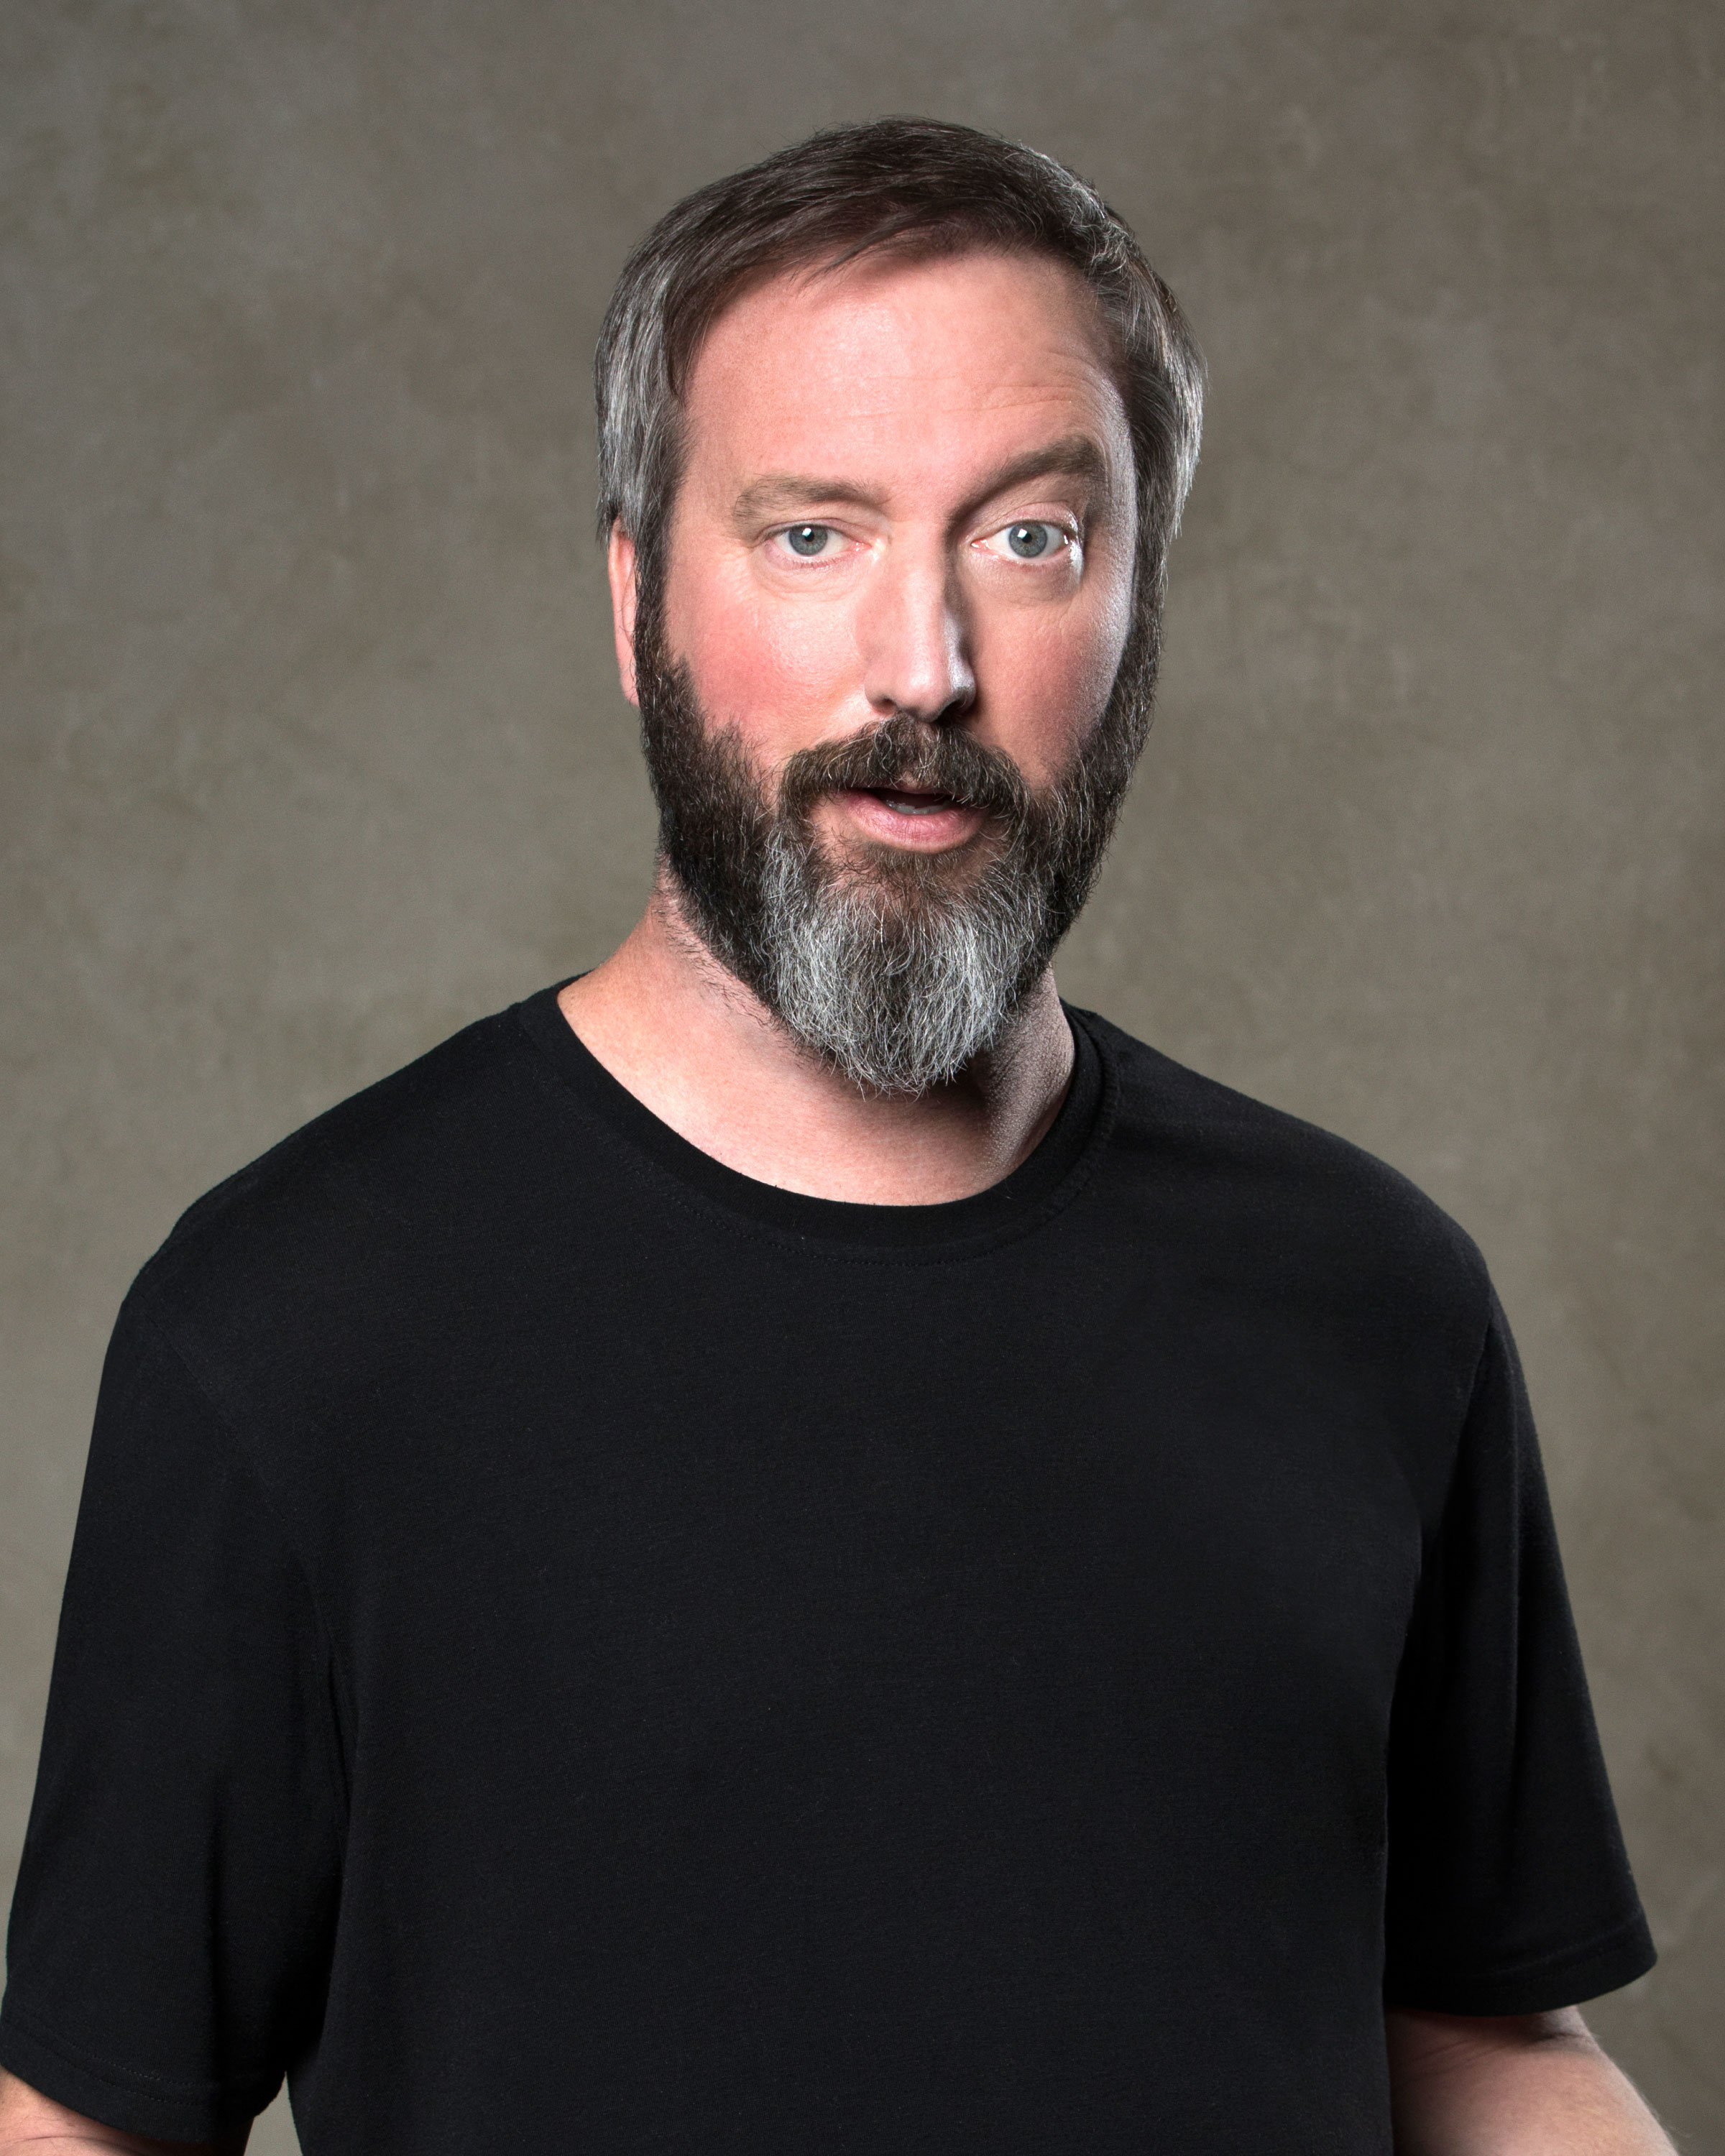 BIG-BROTHER-CELEBRITY-EDITION-Tom Green - At 47, the comedian first rose to fame in 1994 when The Tom Green Show premiered on a local Canada network that caught the eye of MTV. His shock value jokes landed him in many films, such as Road Trip and Charlie's Angels .